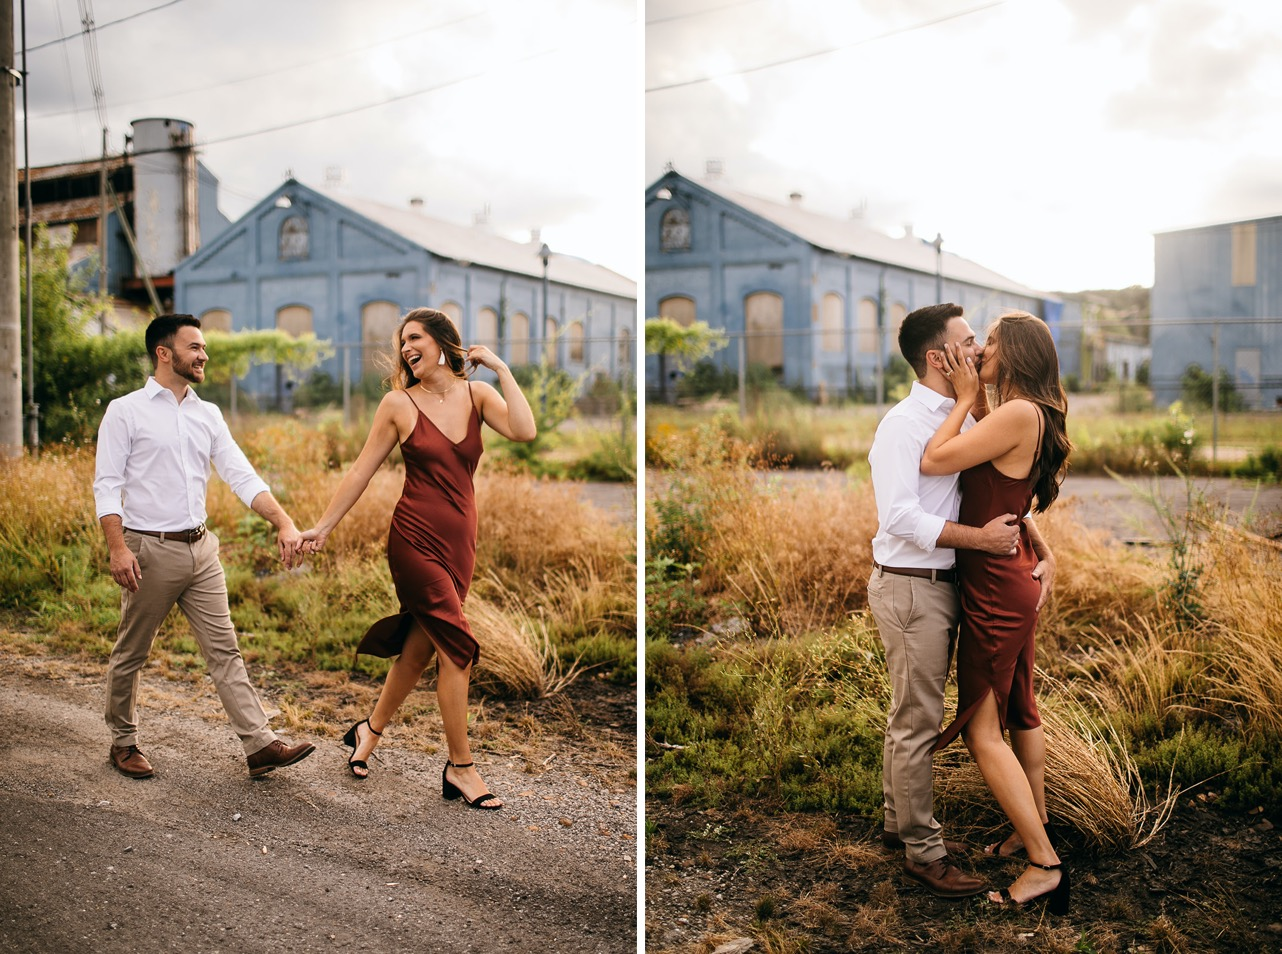 A woman leads her fiancé by the hand on a gravel path at The Foundry in Chattanooga.